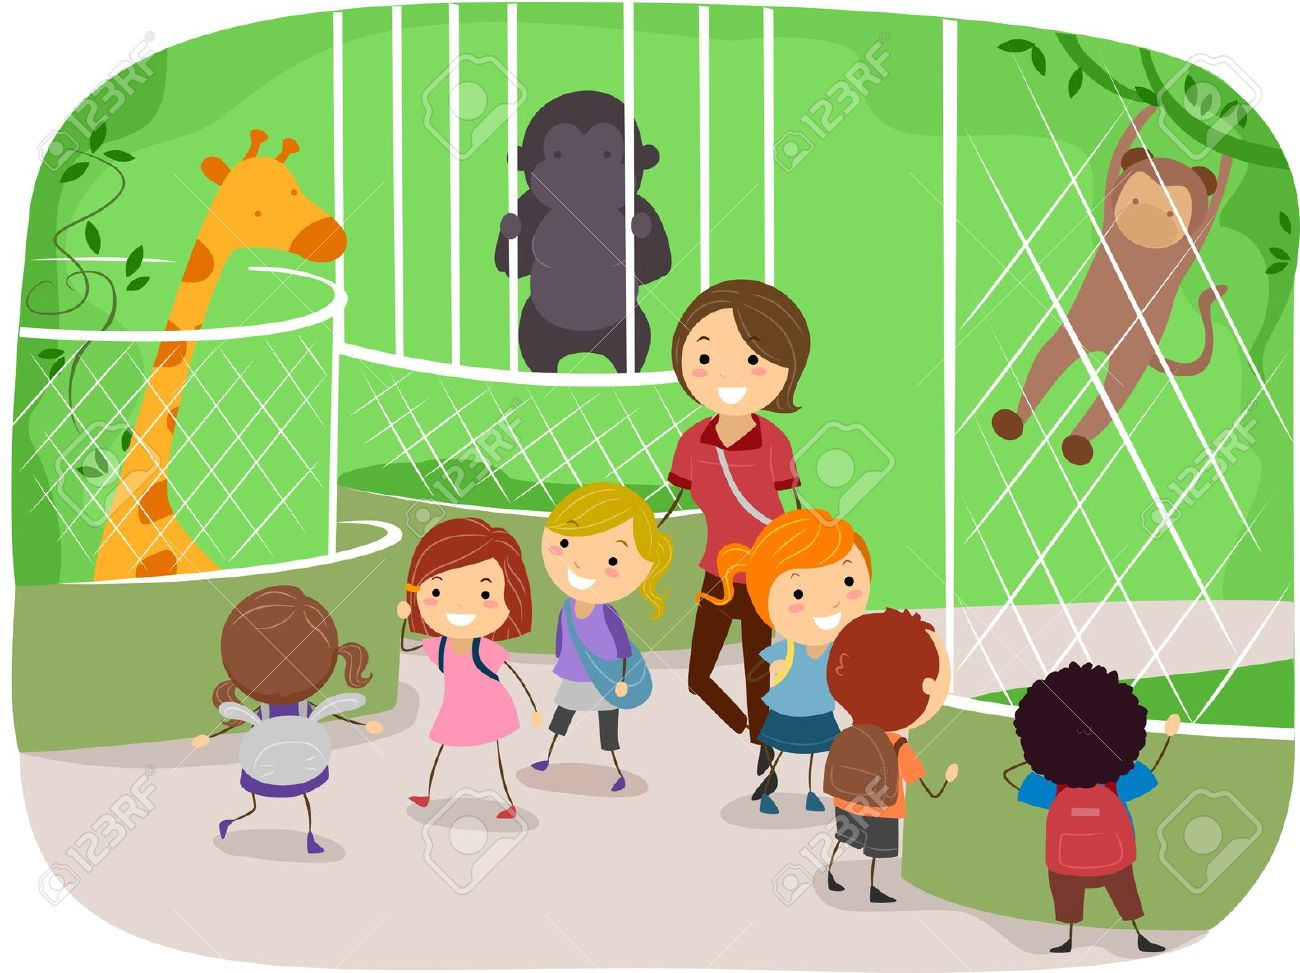 Illustration of Kids Observing Animals in a Zoo Stock Illustration - 10132562